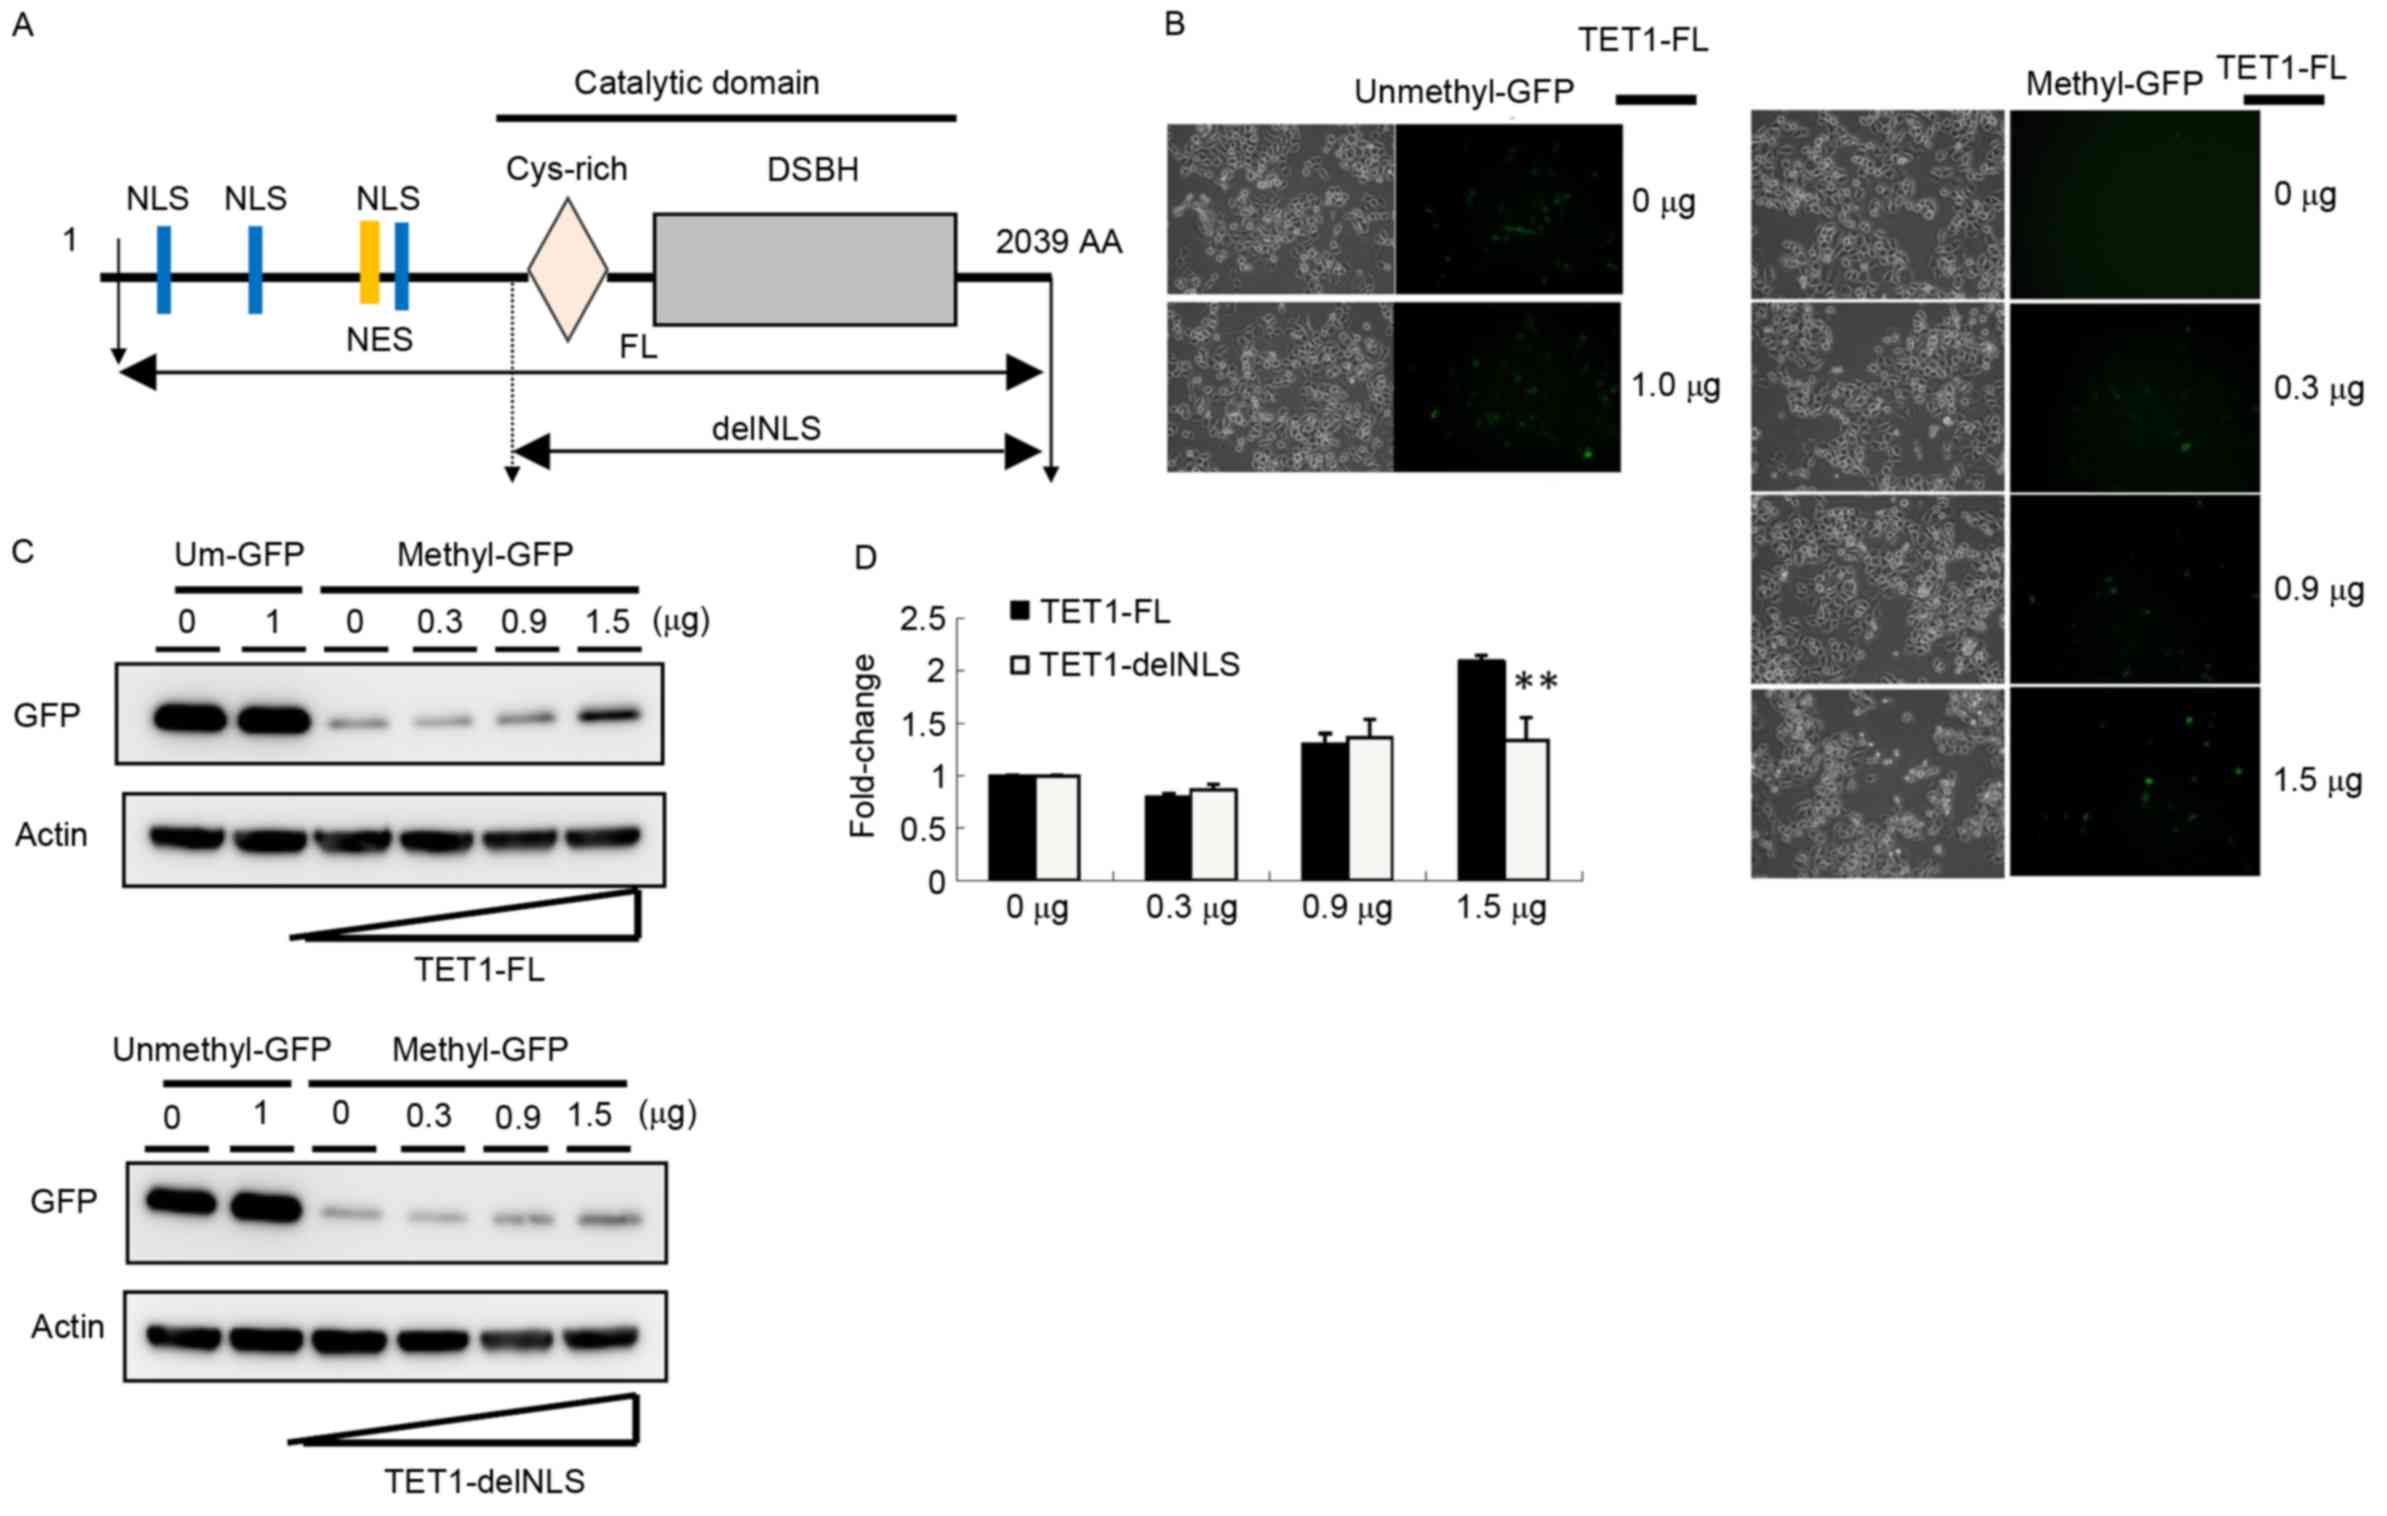 Ten Eleven Translocation 1 Dysfunction Reduces 5 Generated Using Eagle Schematic Software The Formatted A Diagrams Of Tet1 Expression Constructs For Full Length And Delnls Ags Cells Were Co Transfected With Methylated Gfp Or Unmethylated